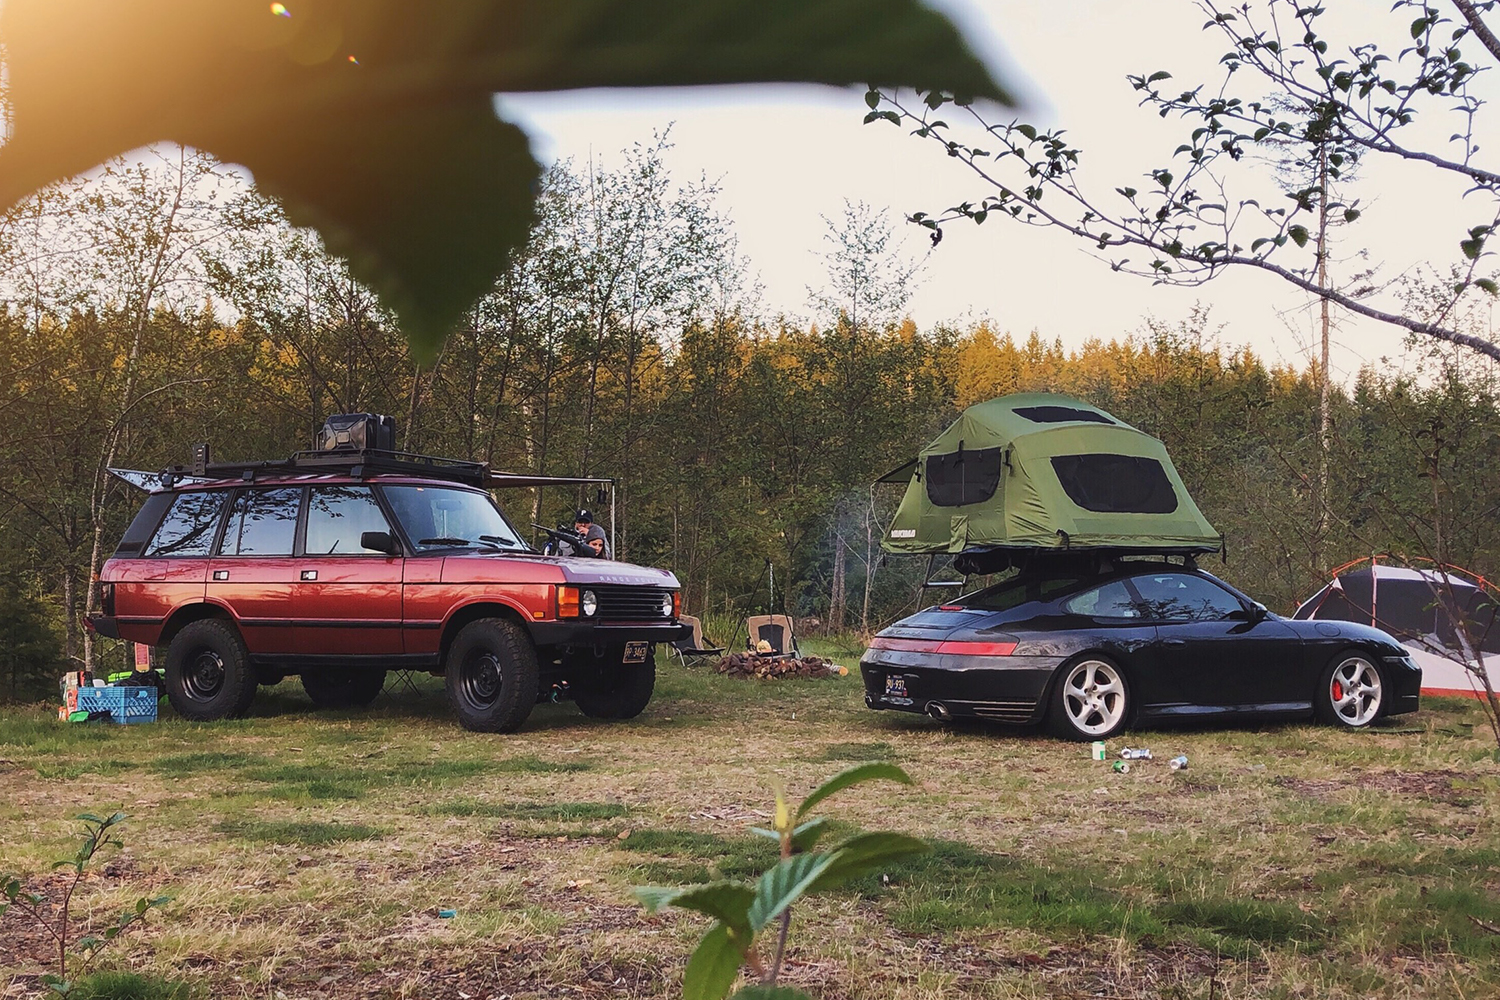 A 1991 red Range Rover Classic and black Porsche 996 with a car camping tent